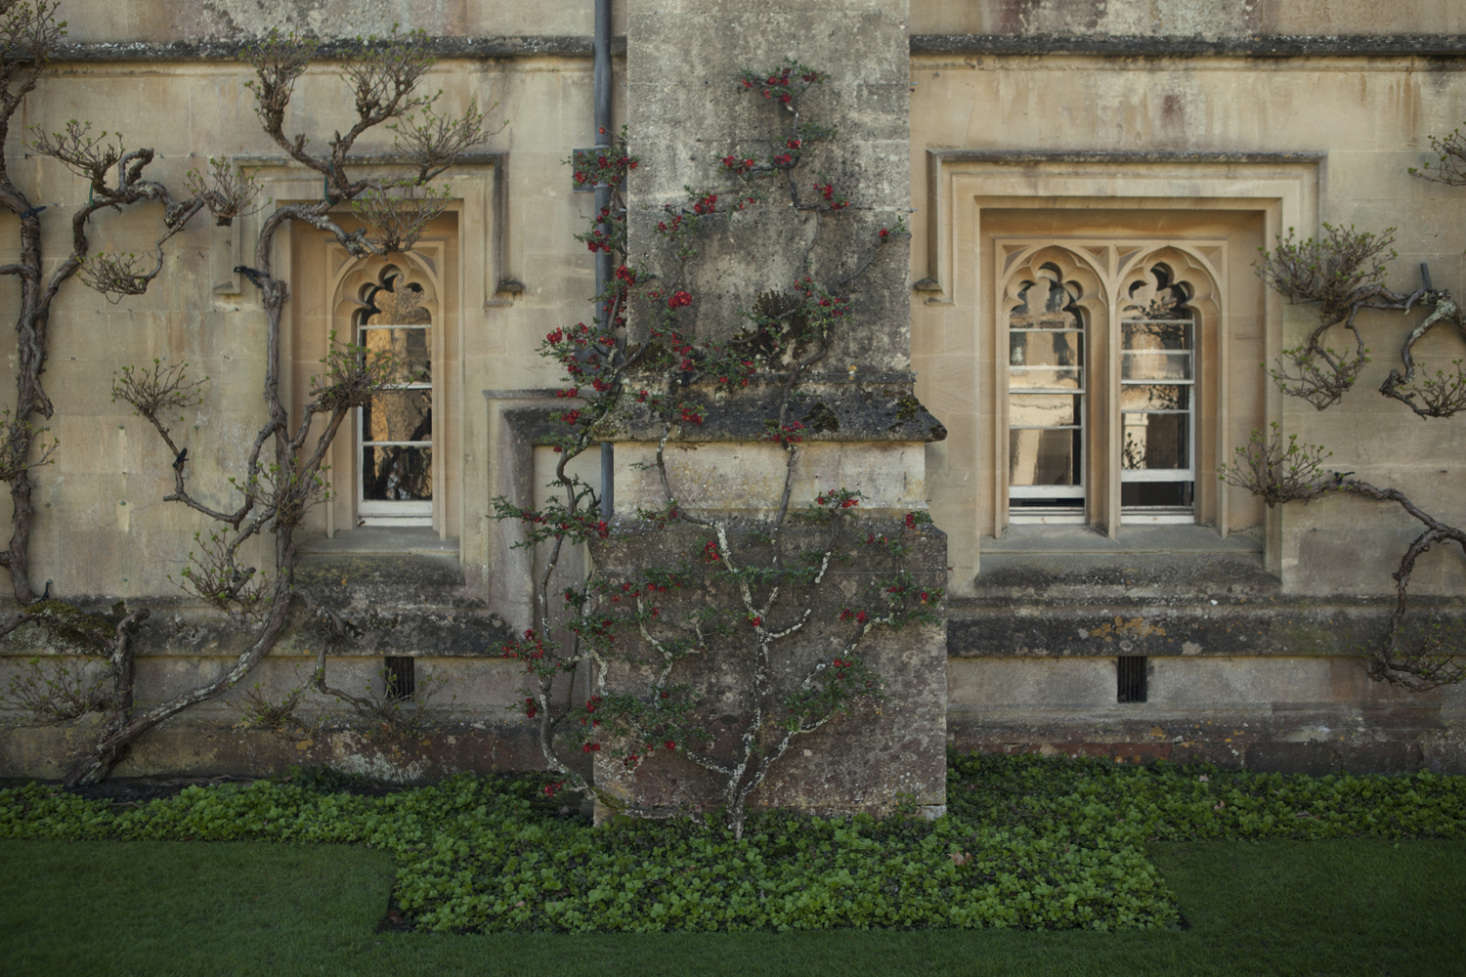 First on that to-do list? Pruning shrubs and trees. Photograph byJim Powell for Gardenista, fromThe Secret History: A Master Class in Gothic Pruning.